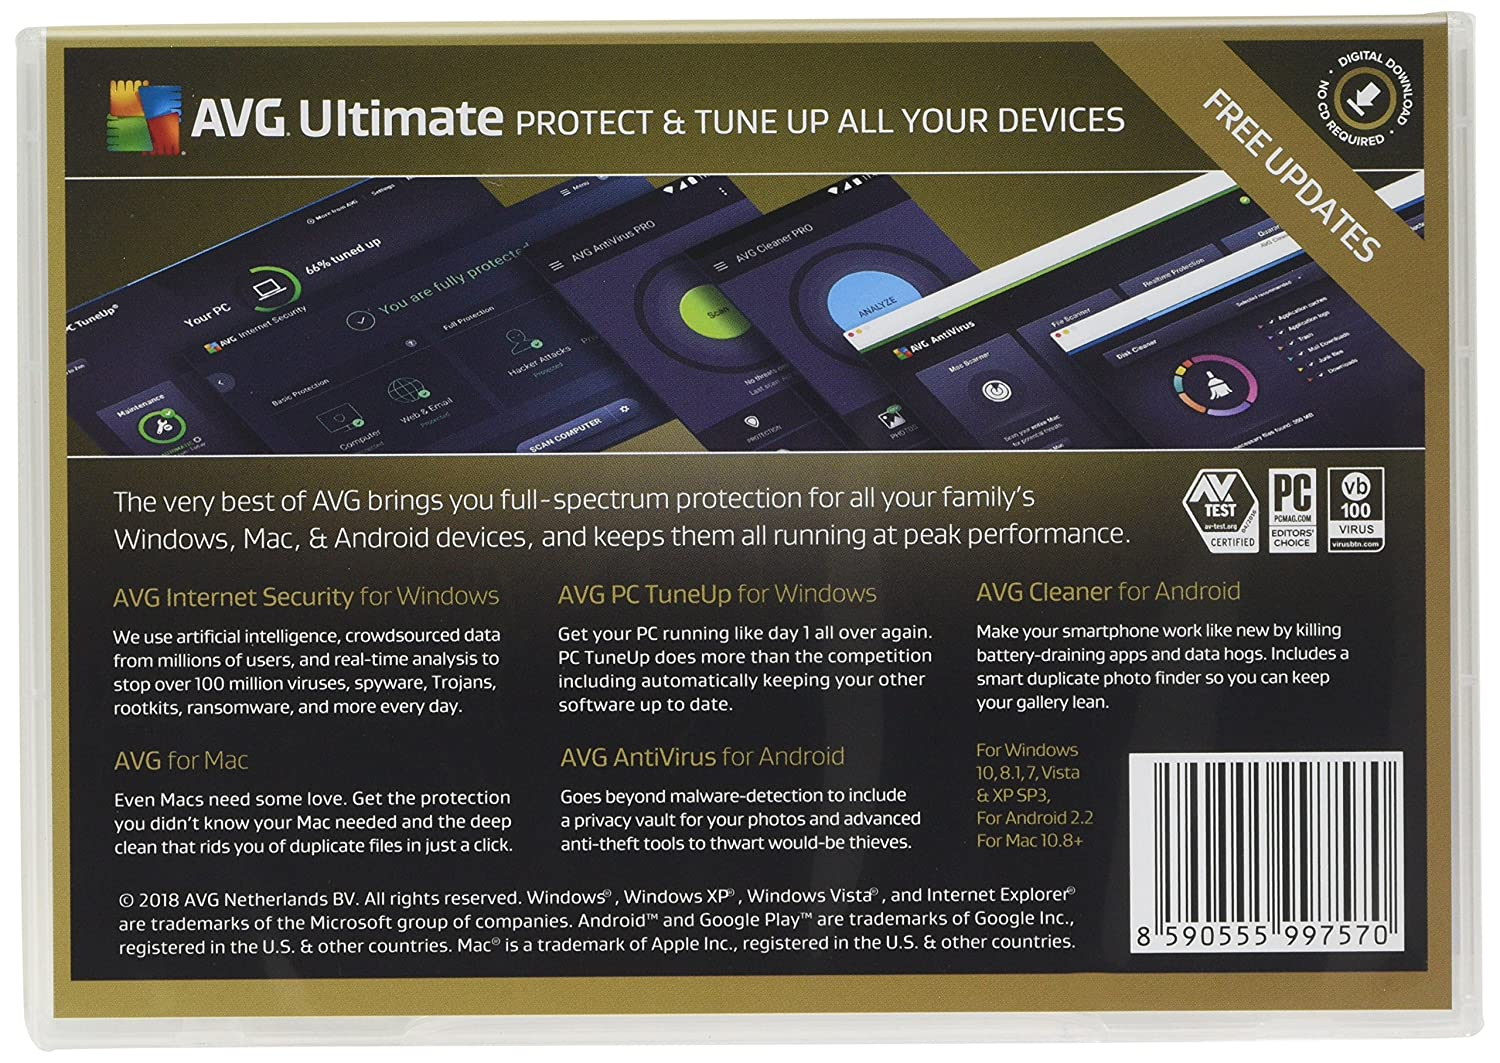 does avg work with windows xp